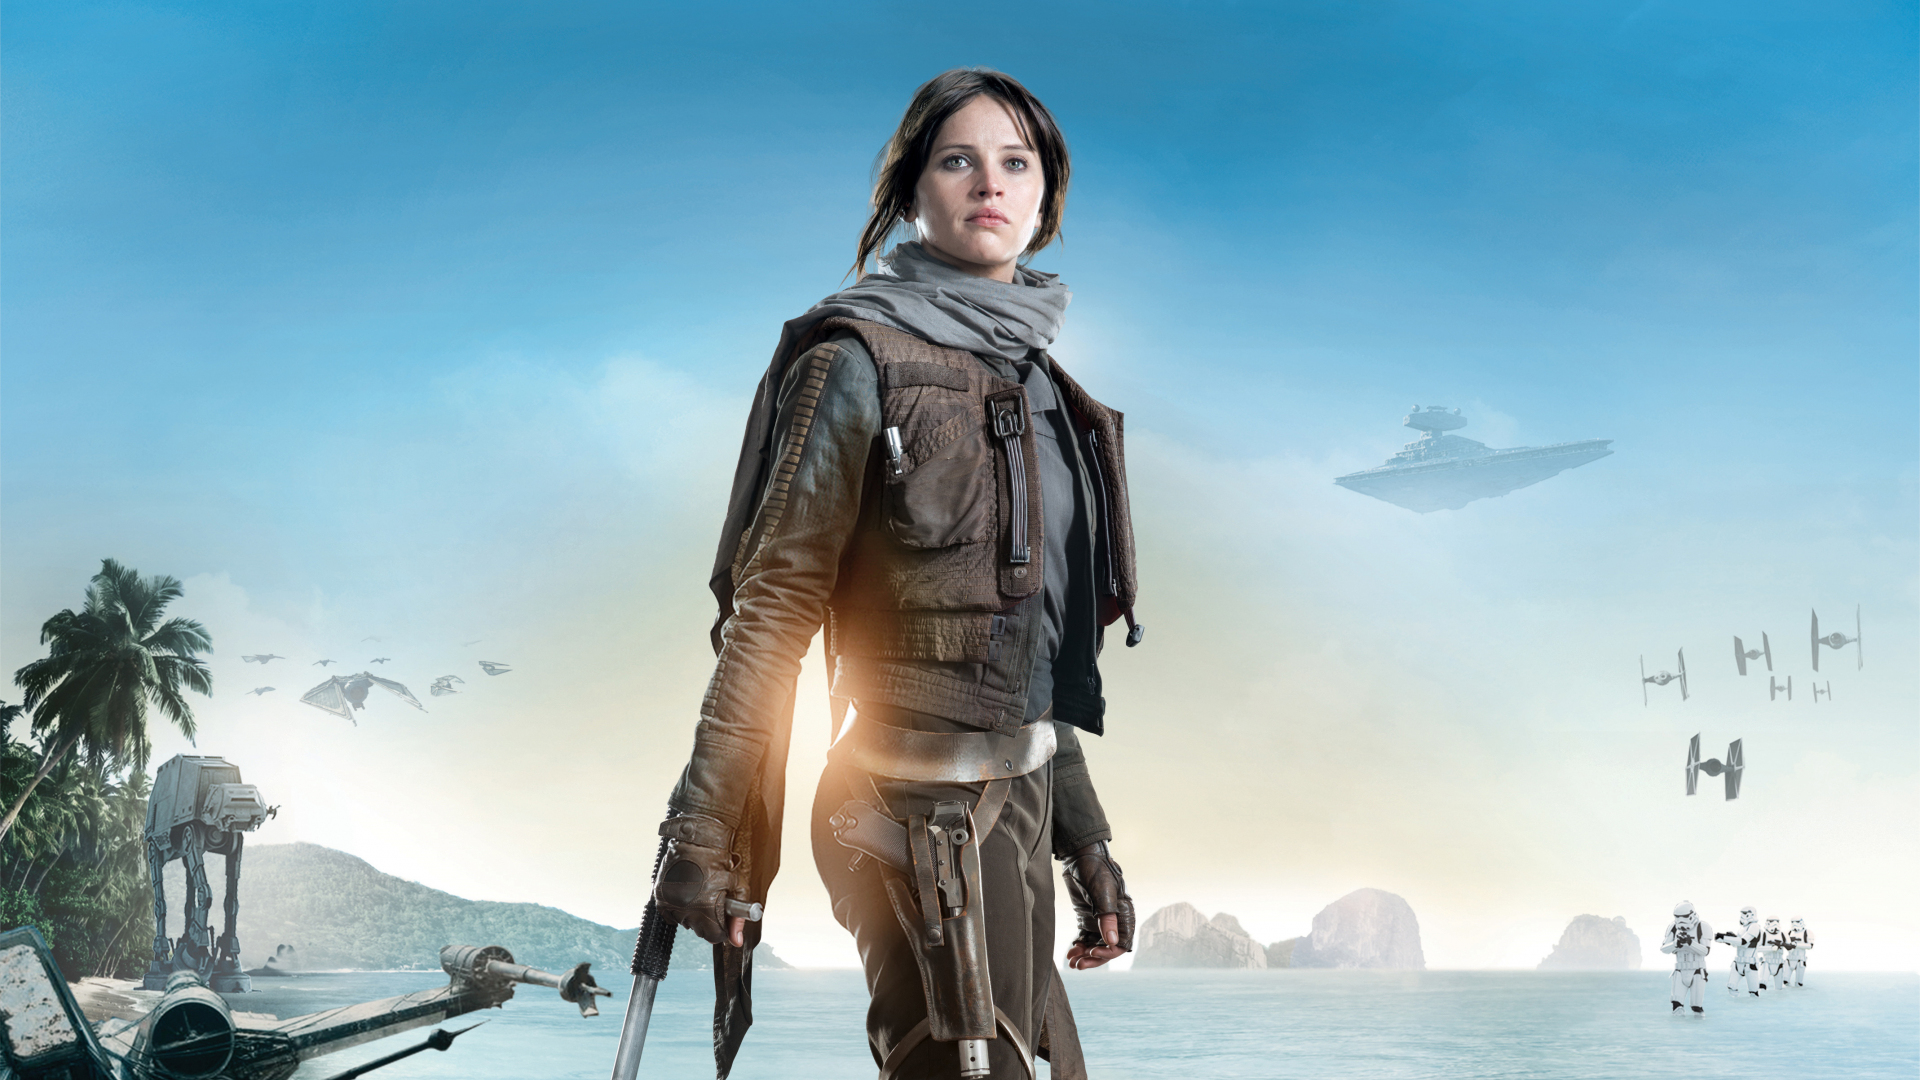 Download 1920x1080 Wallpaper Rogue One A Star Wars Story Felicity